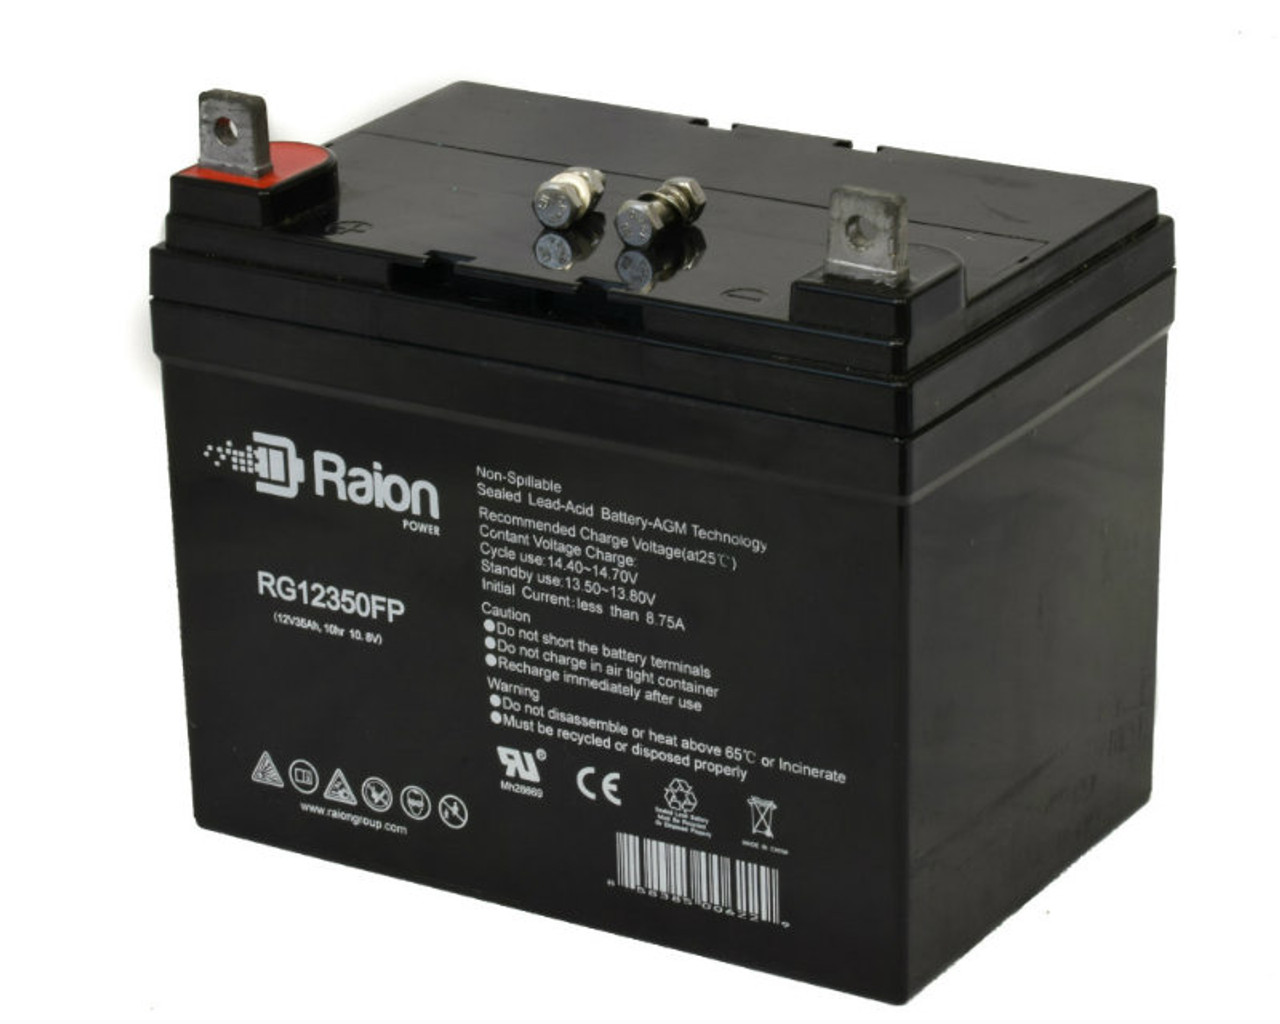 RG12350FP Sealed Lead Acid Battery Pack For Ademco PWPS12330 Fire Alarm Control Panel